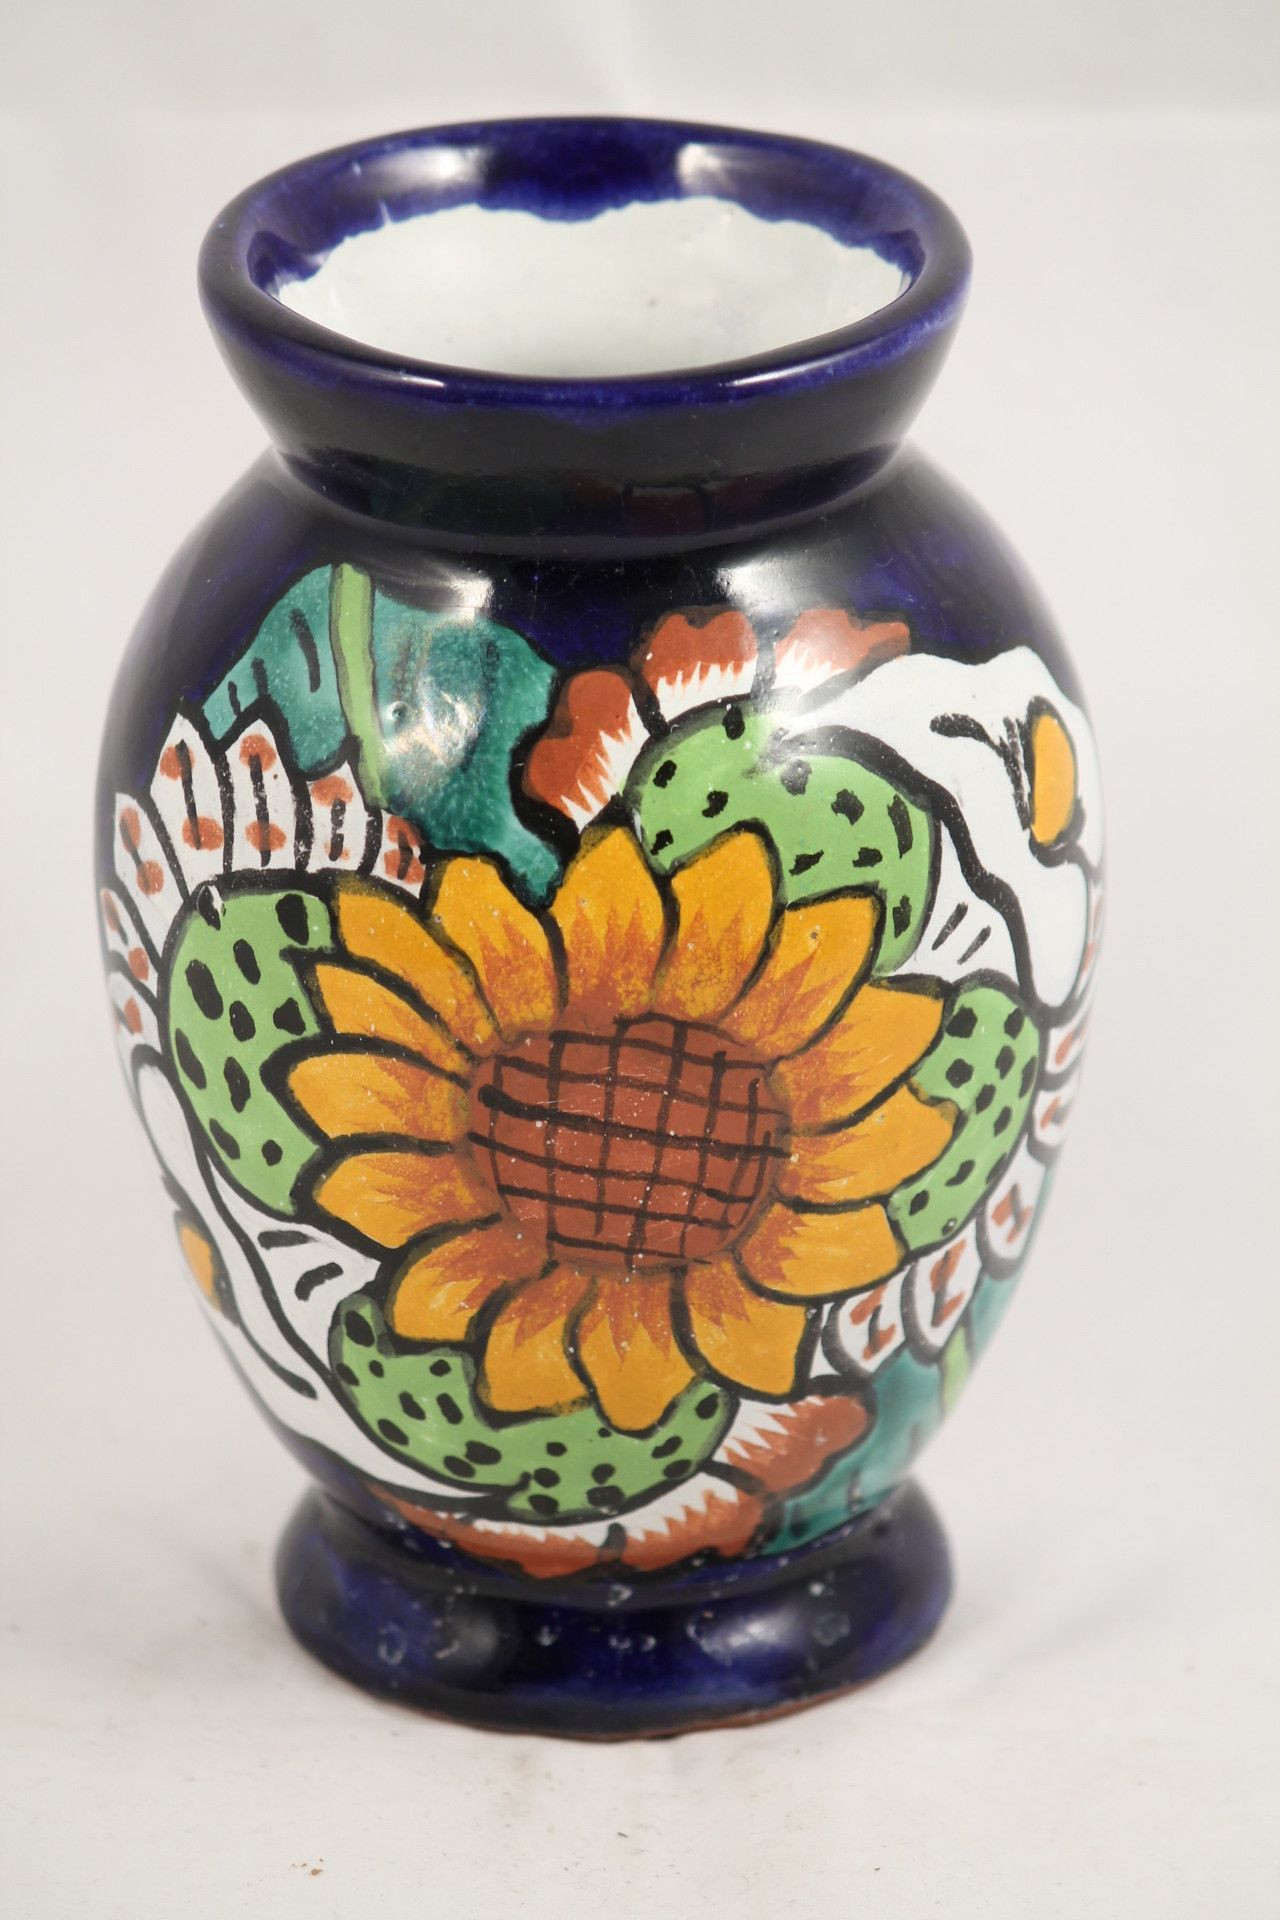 Small Metal Flower Vases Of Mirror Flower Vase Collection Unique Metal Vases 3h Mirrored Mosaic Intended for Mirror Flower Vase Photos Small Hand Painted Mexican Ceramic Flower Vase Mirror Of Mirror Flower Vase